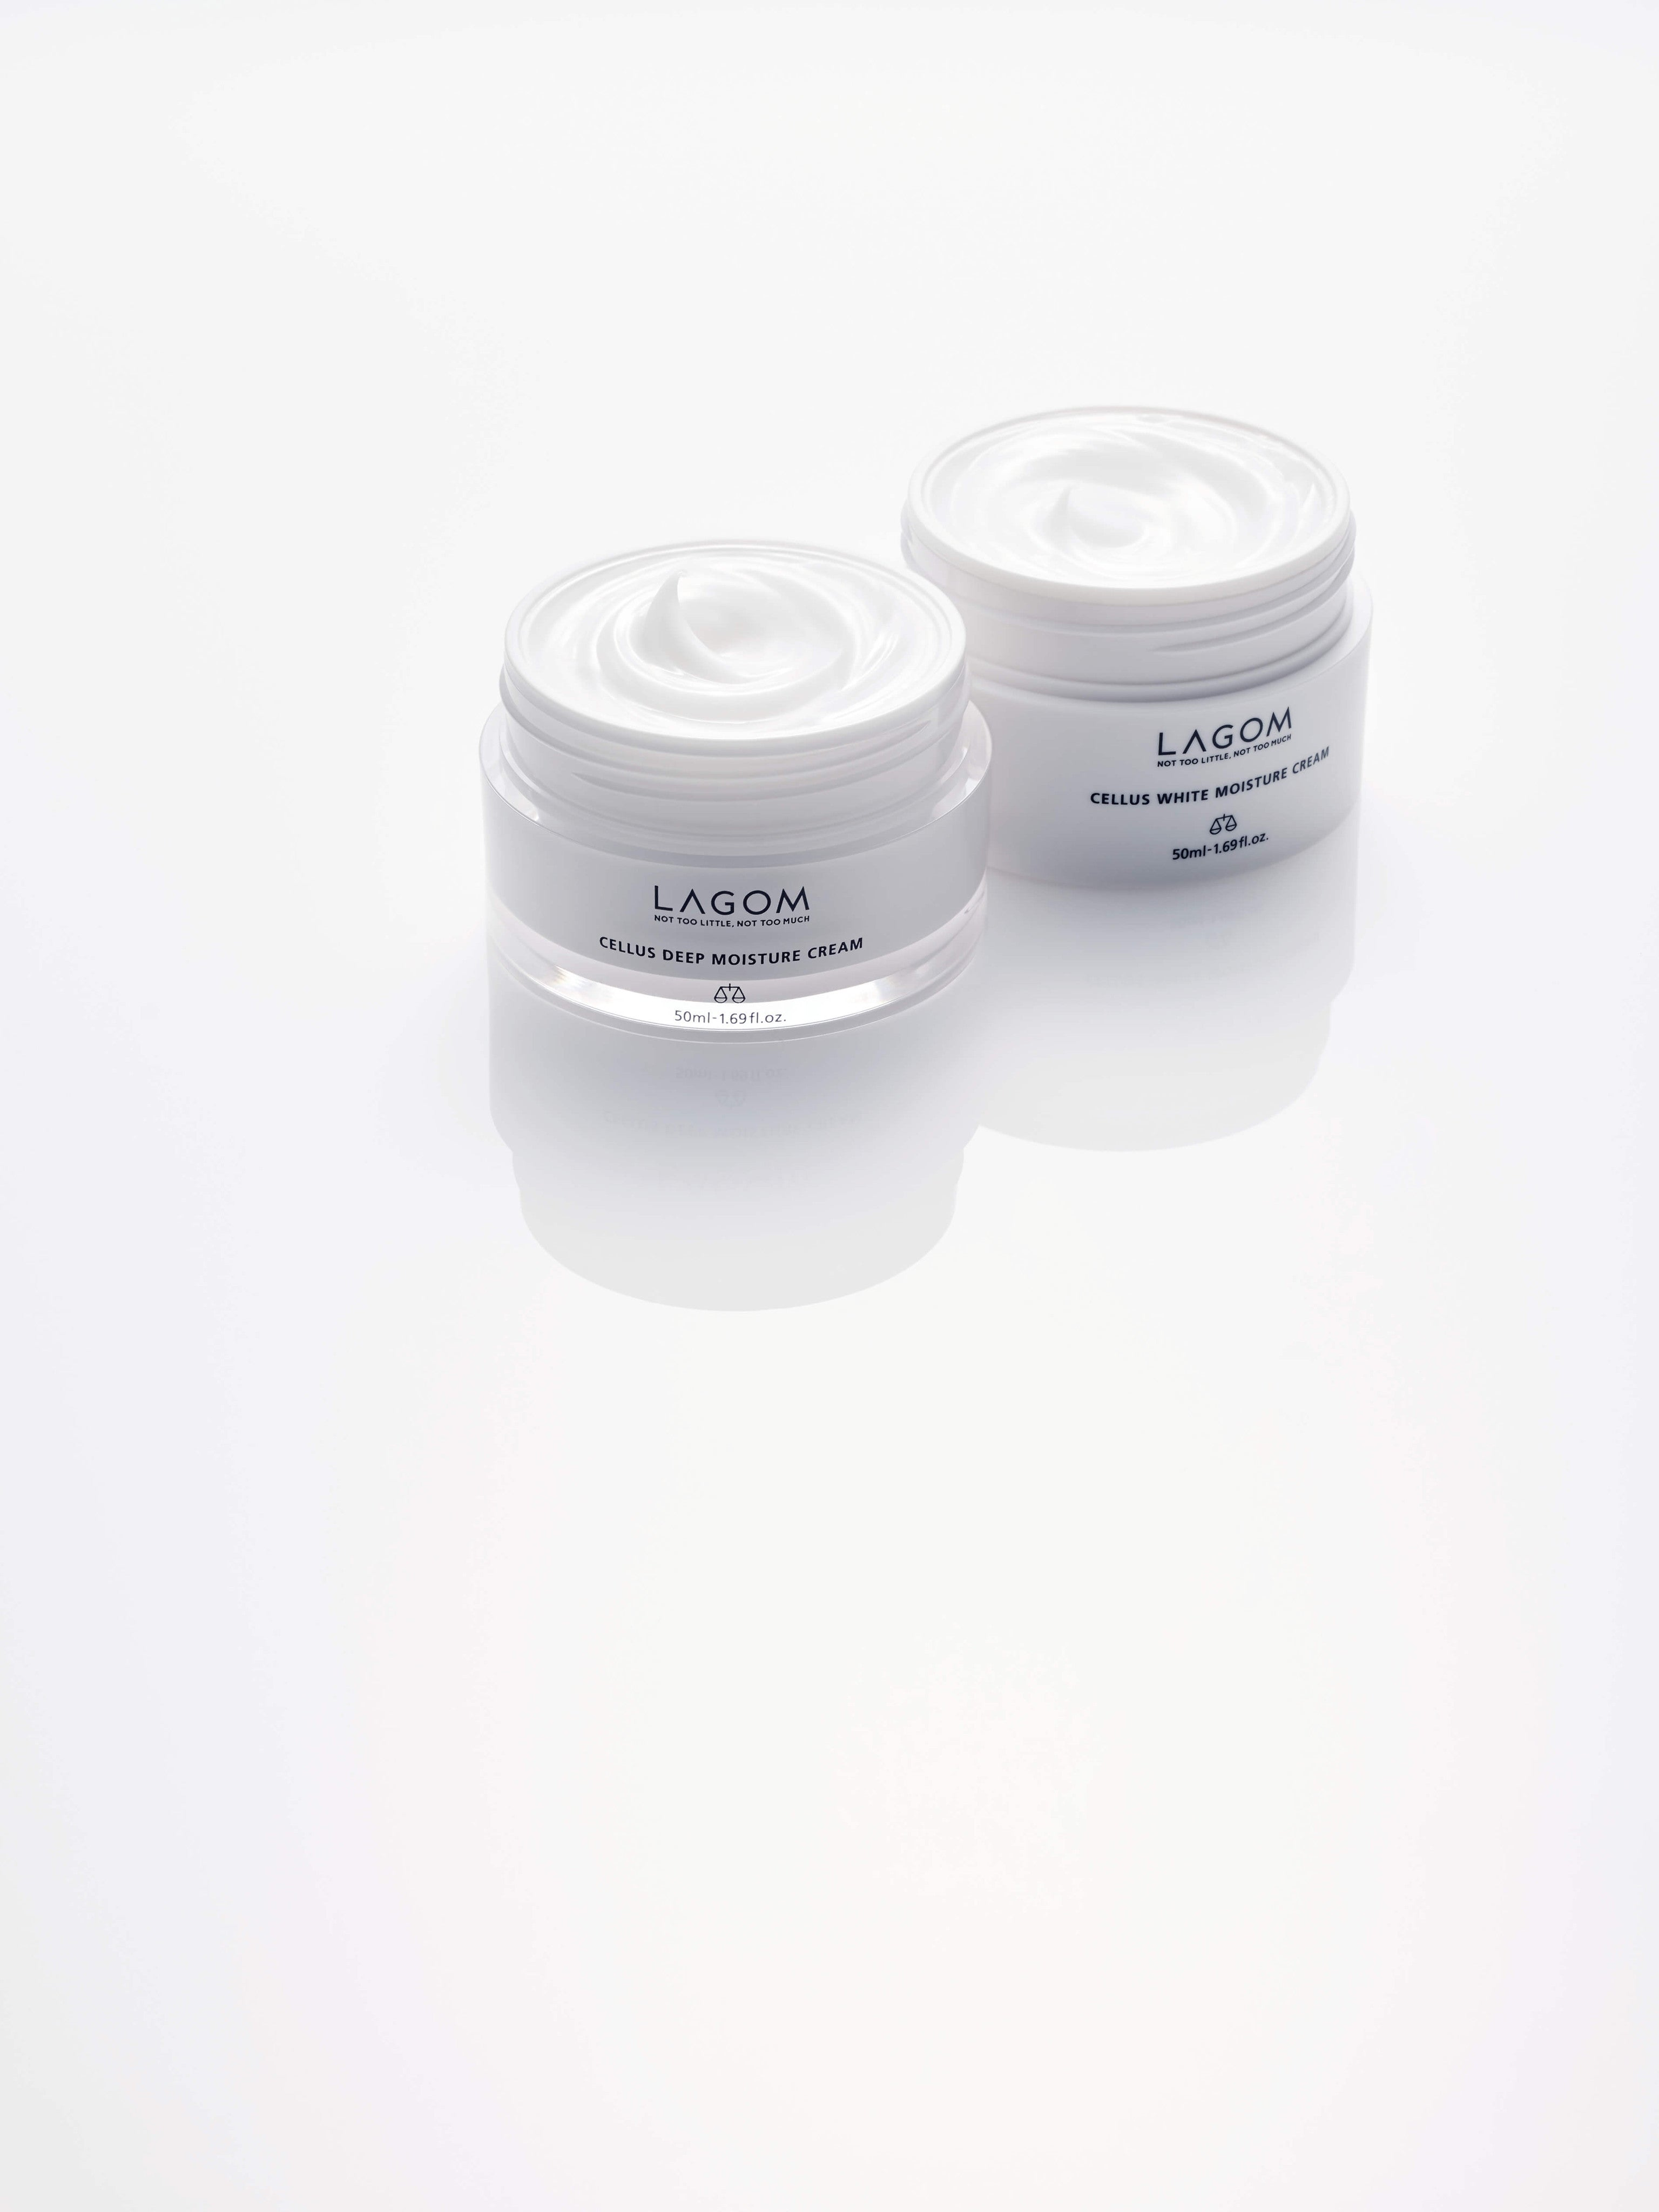 Lagom White Moisture Cream and Deep Moisture Cream at Franki and Seoul